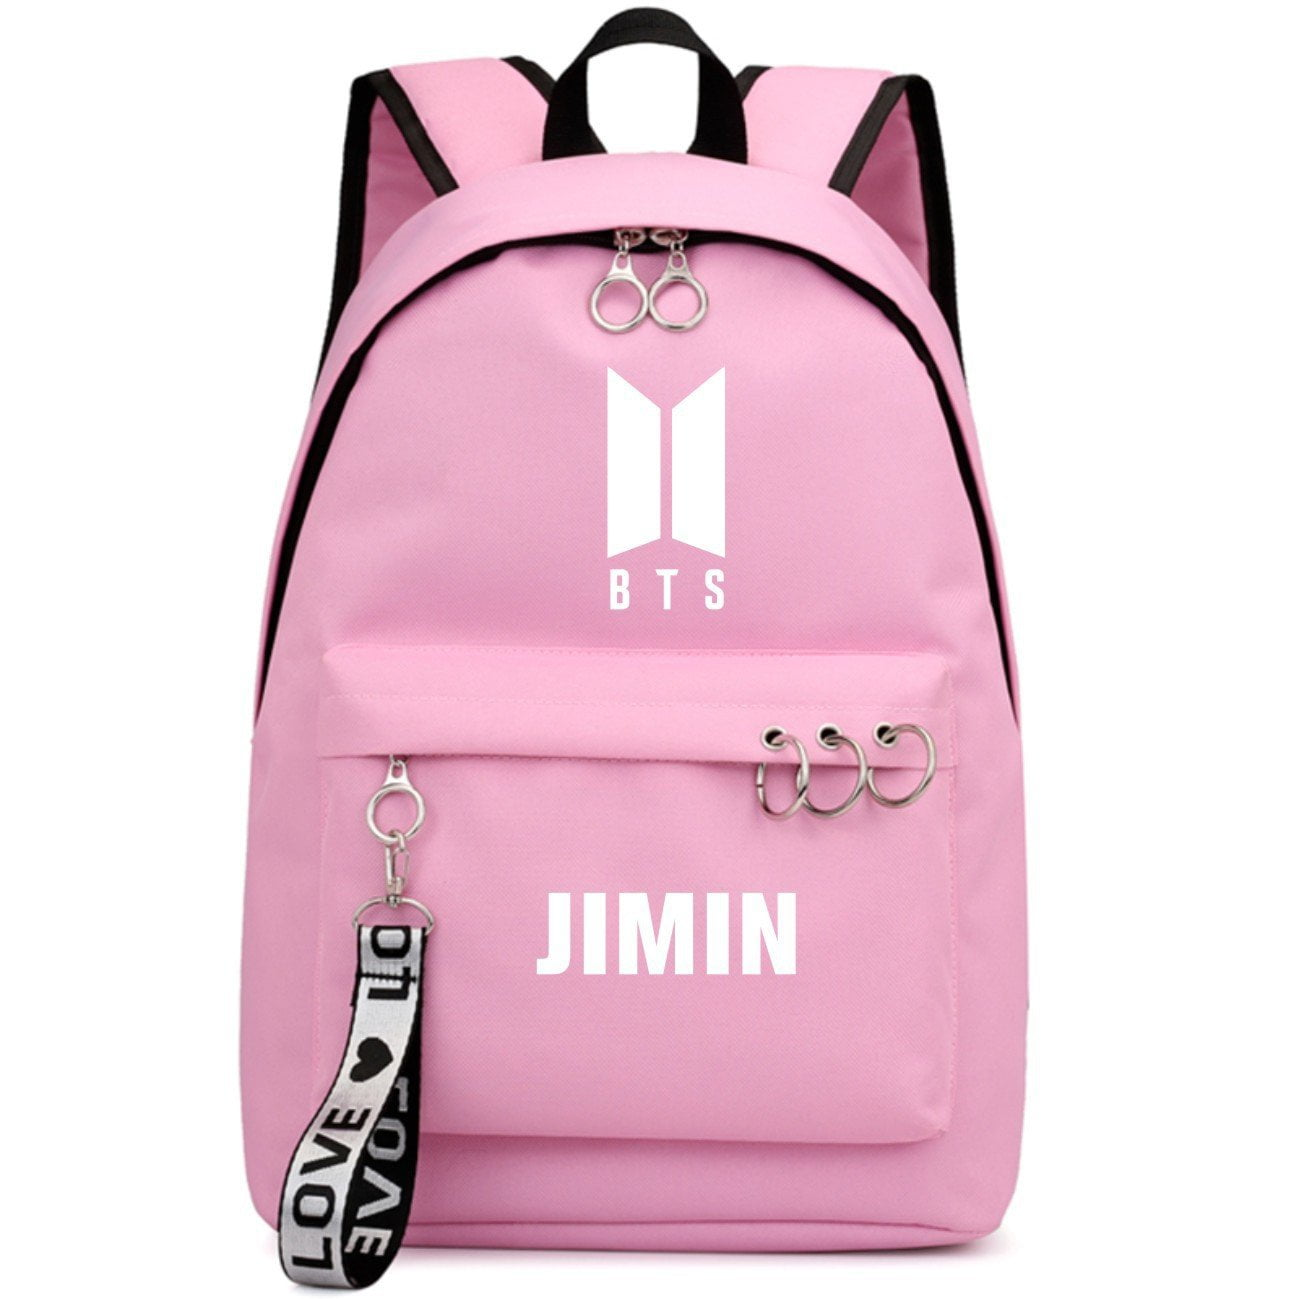 BTS New Logo Large Capacity Backpack / School Bag with Silver Rings in 2 Colours  583071224455#3925845045040